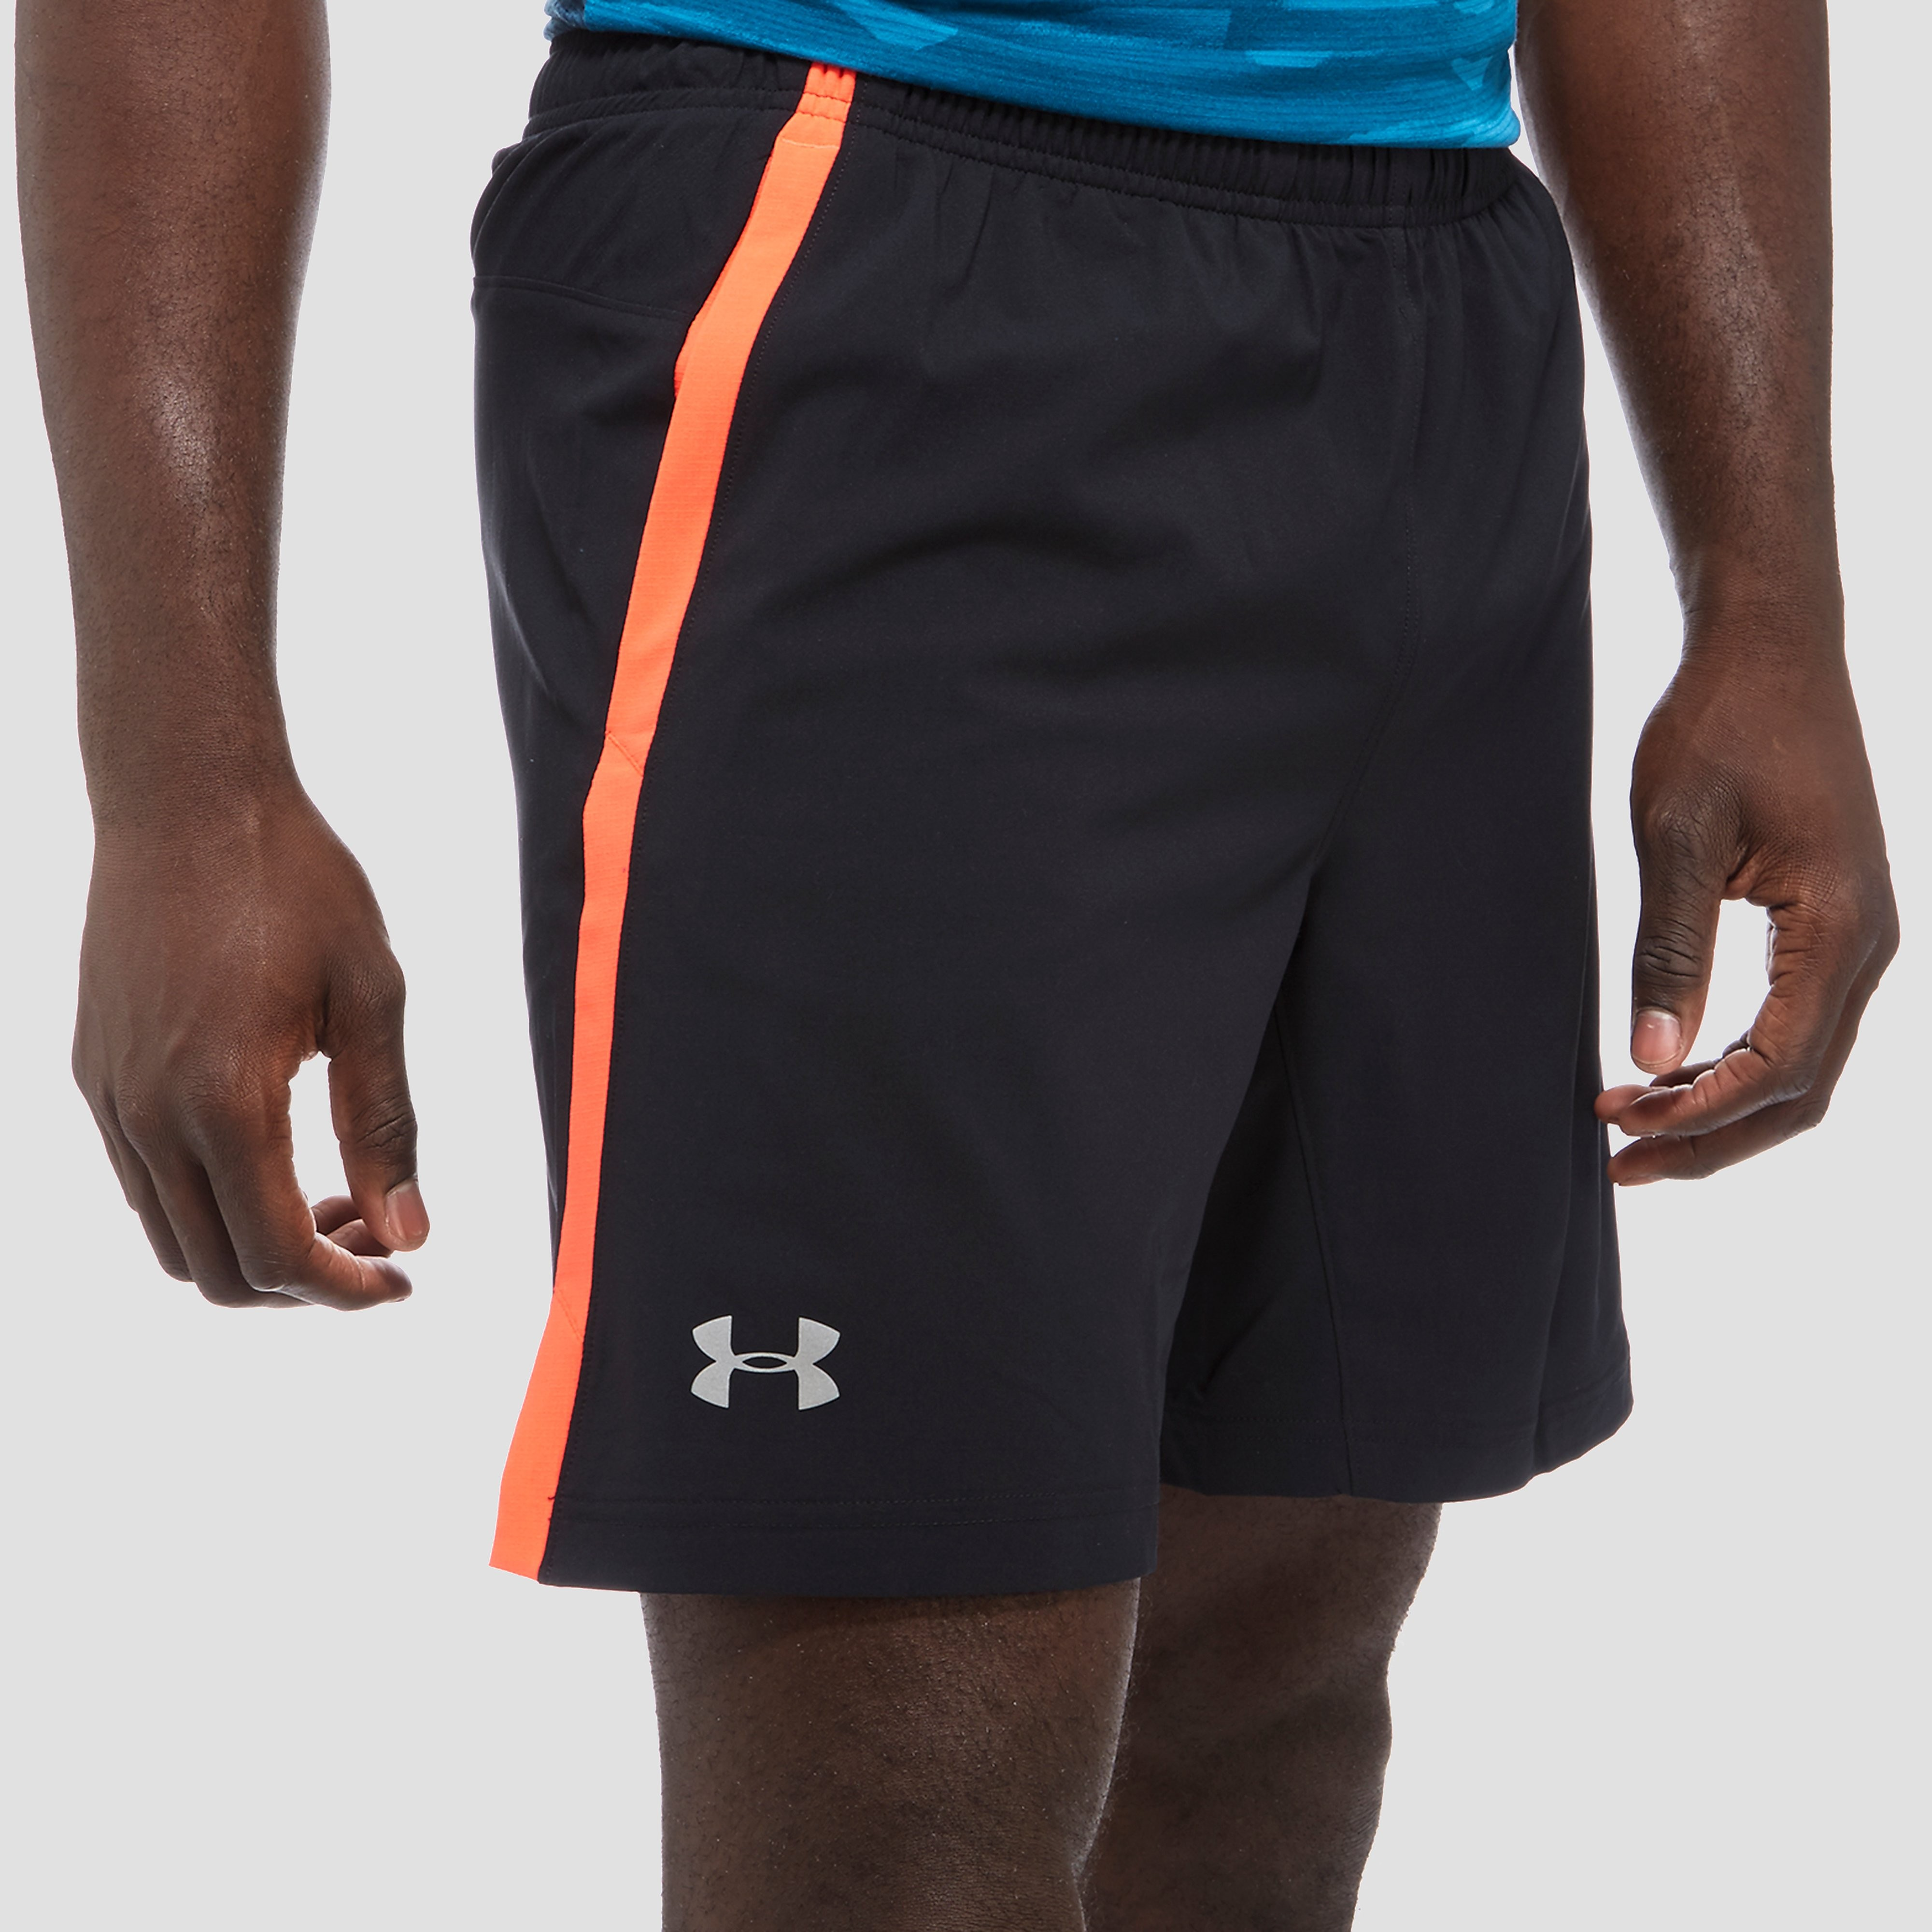 Under Armour Launch 2 in 1 Men's Shorts